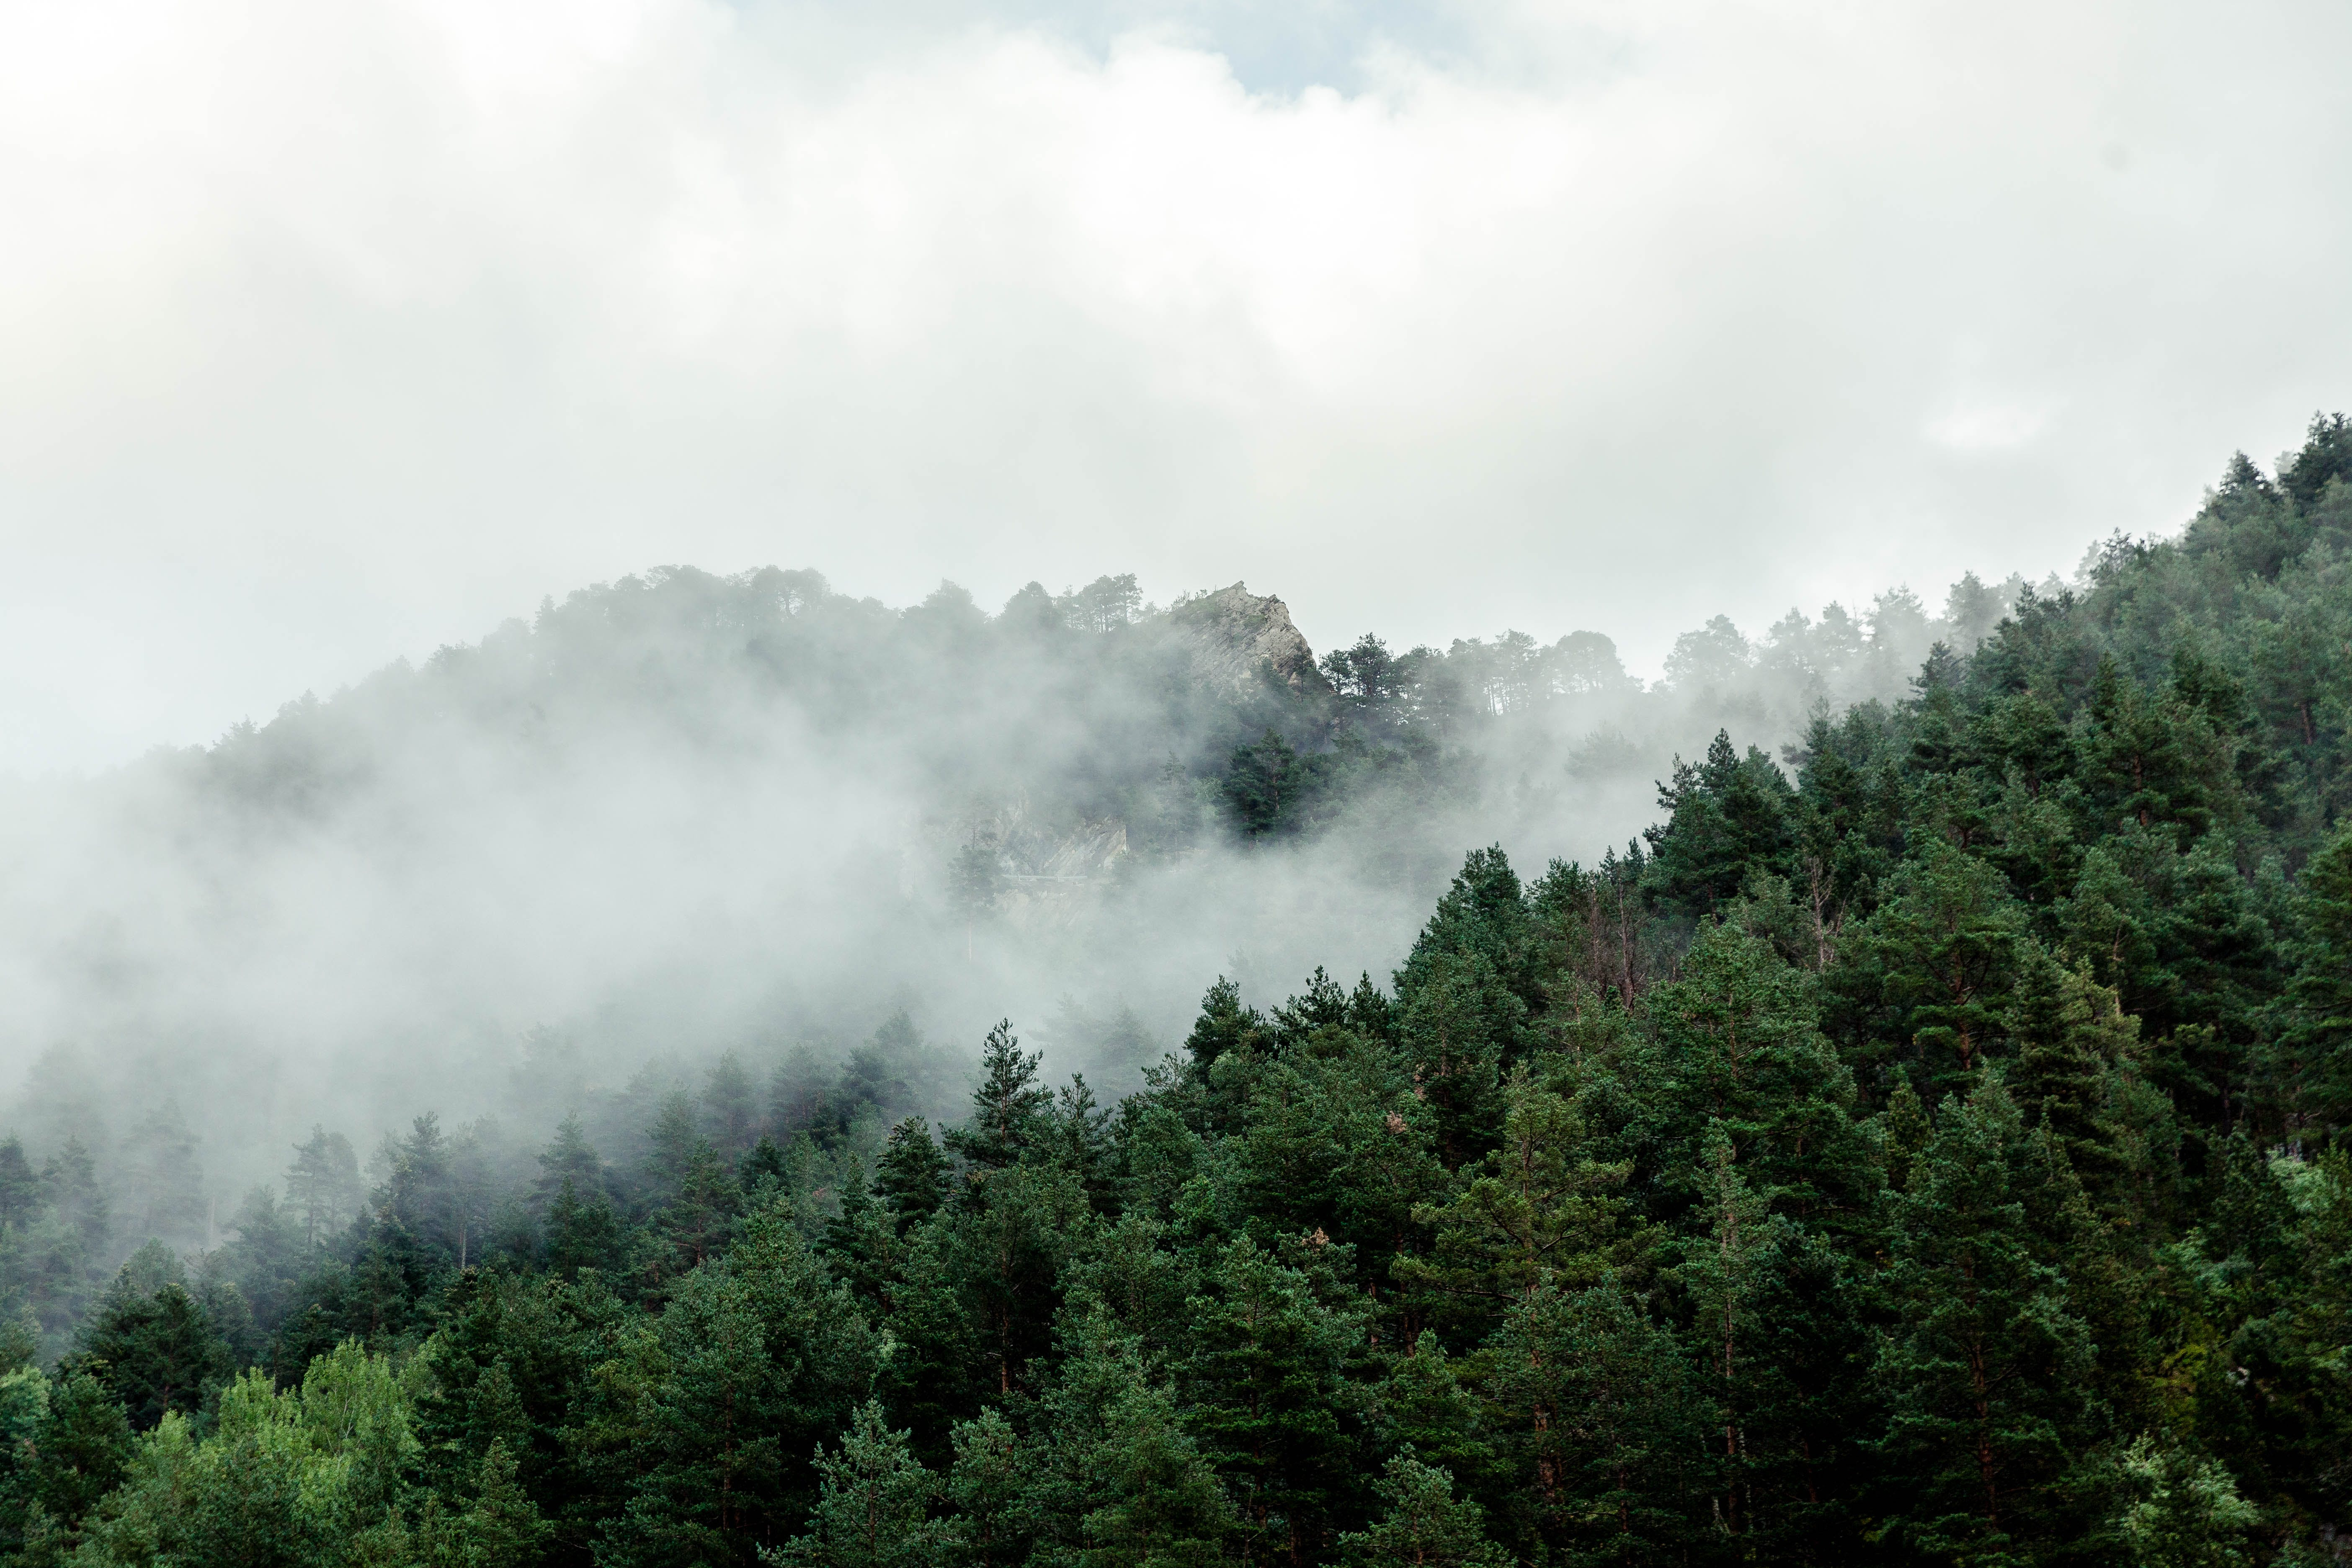 Free stock photo of mountains, forest, trees, fog